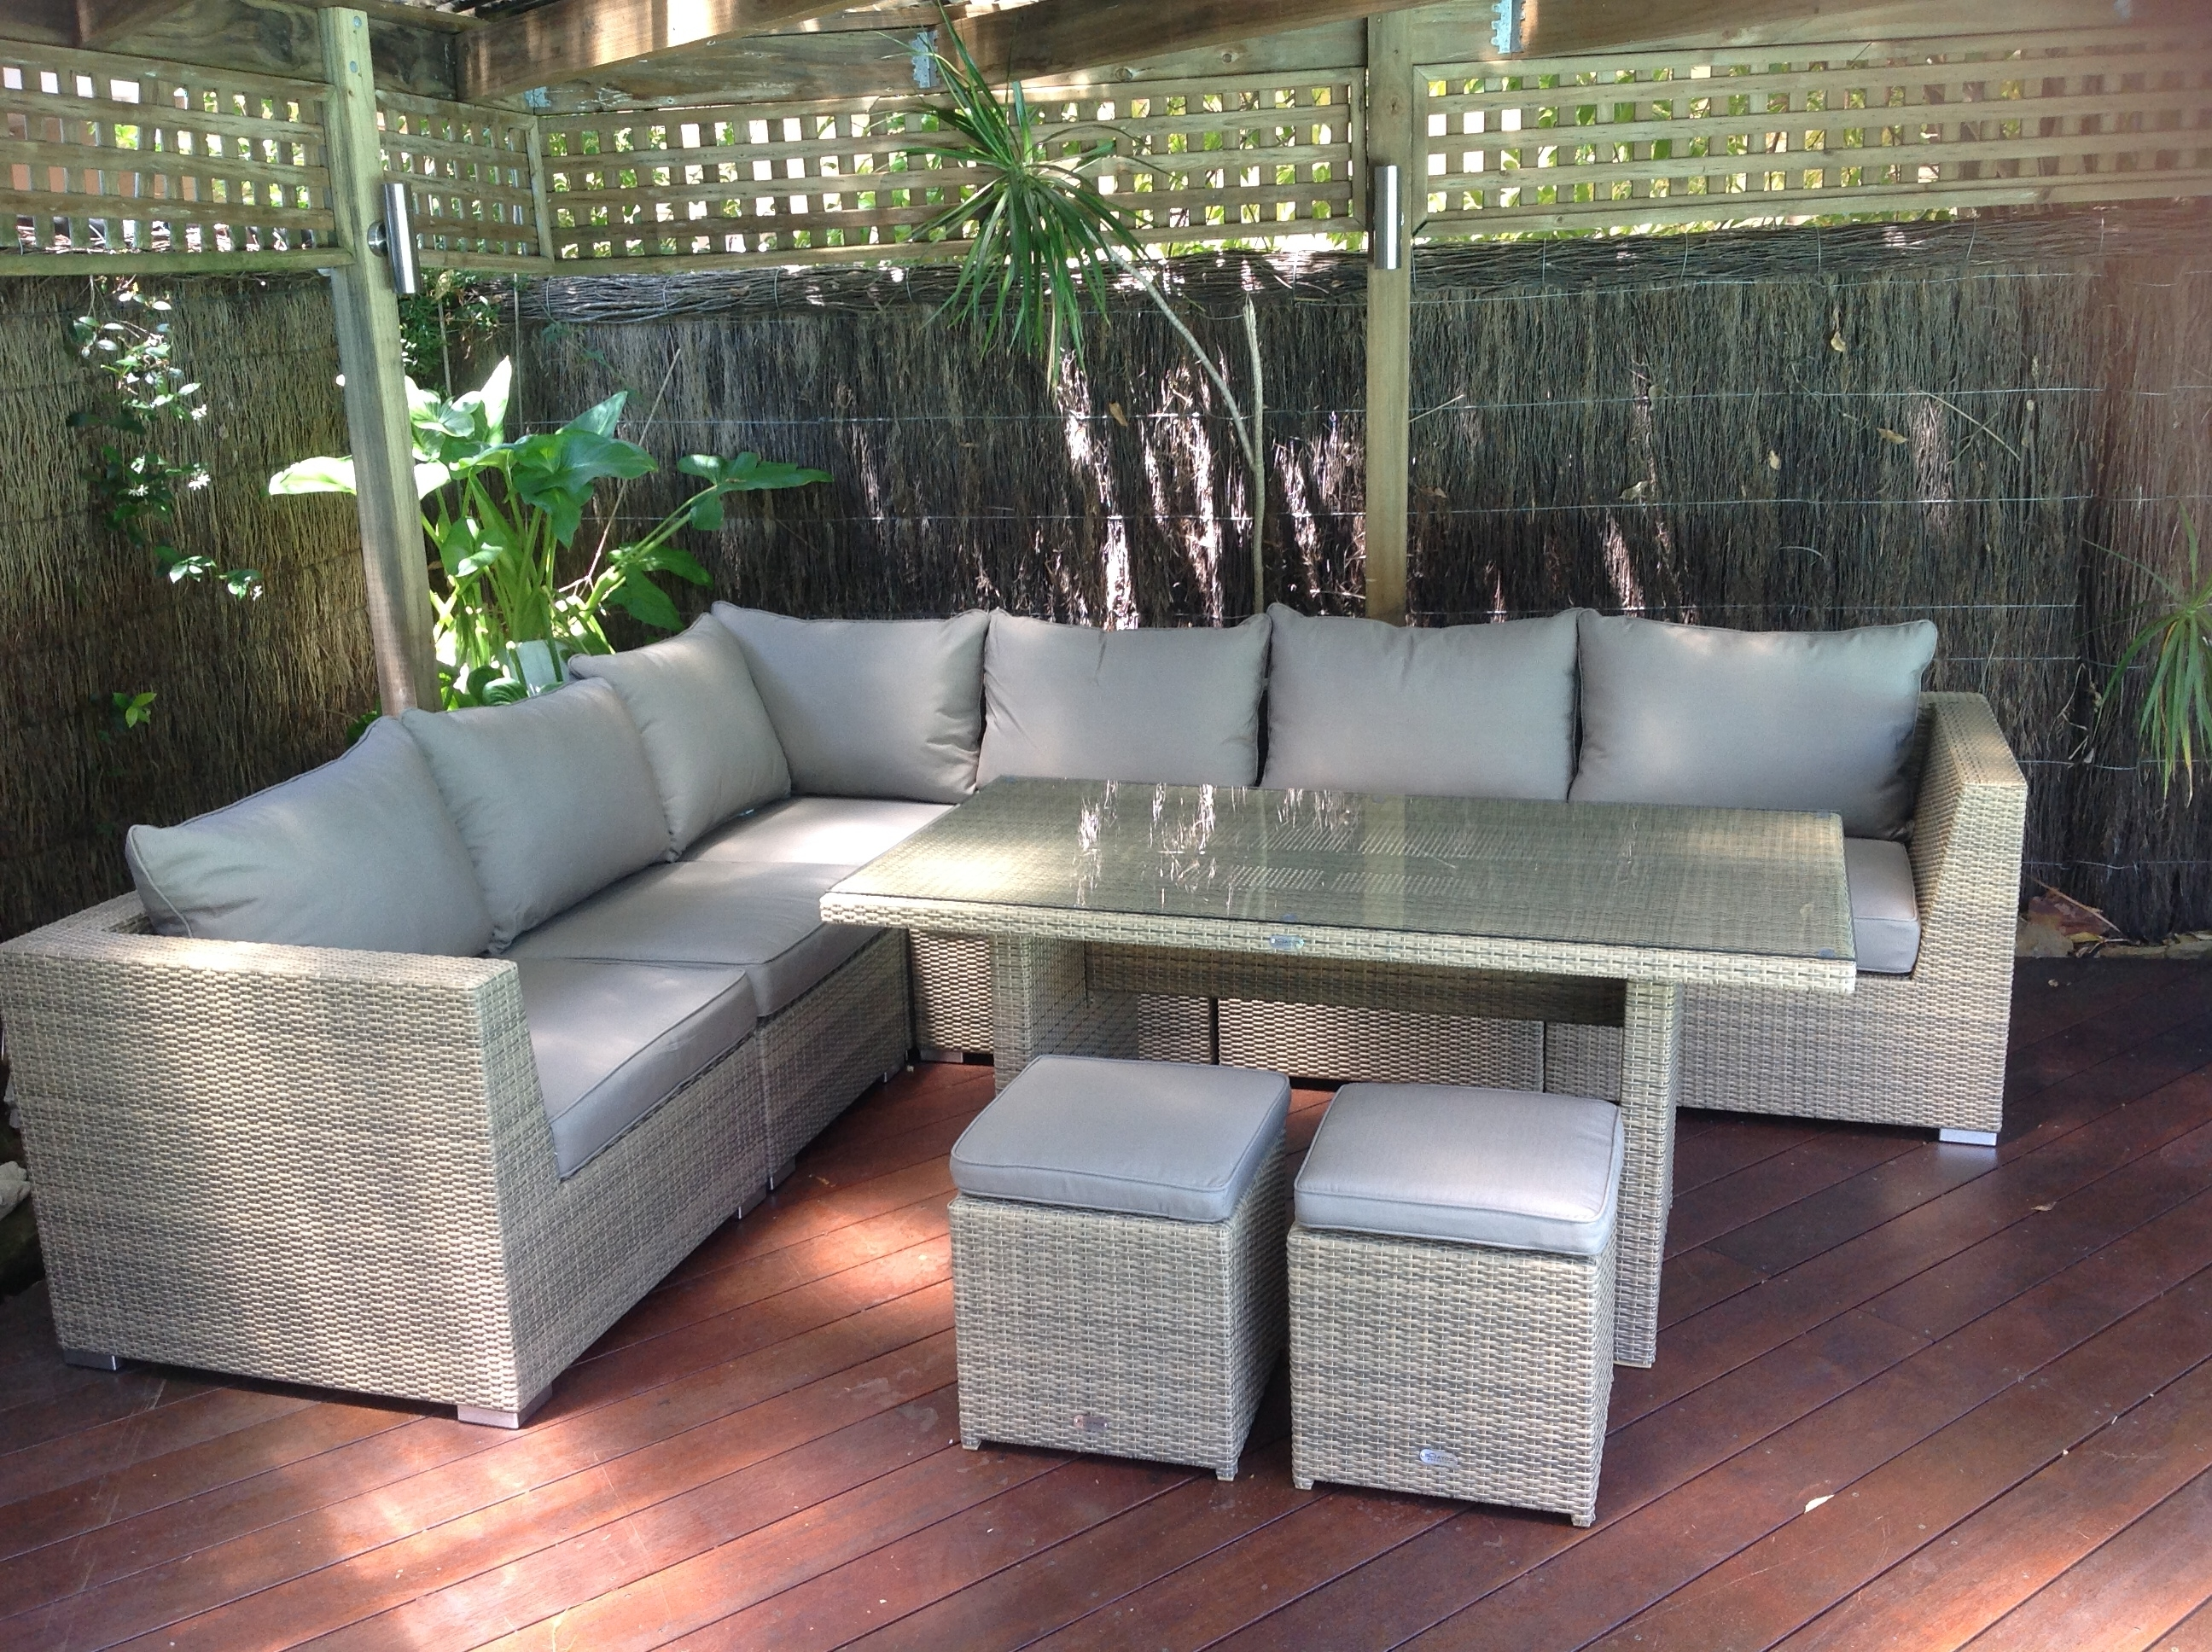 Outdoor Furniture Evolution – Dining Out In Comfort Regarding Preferred Chaise Lounge Sets (View 3 of 15)